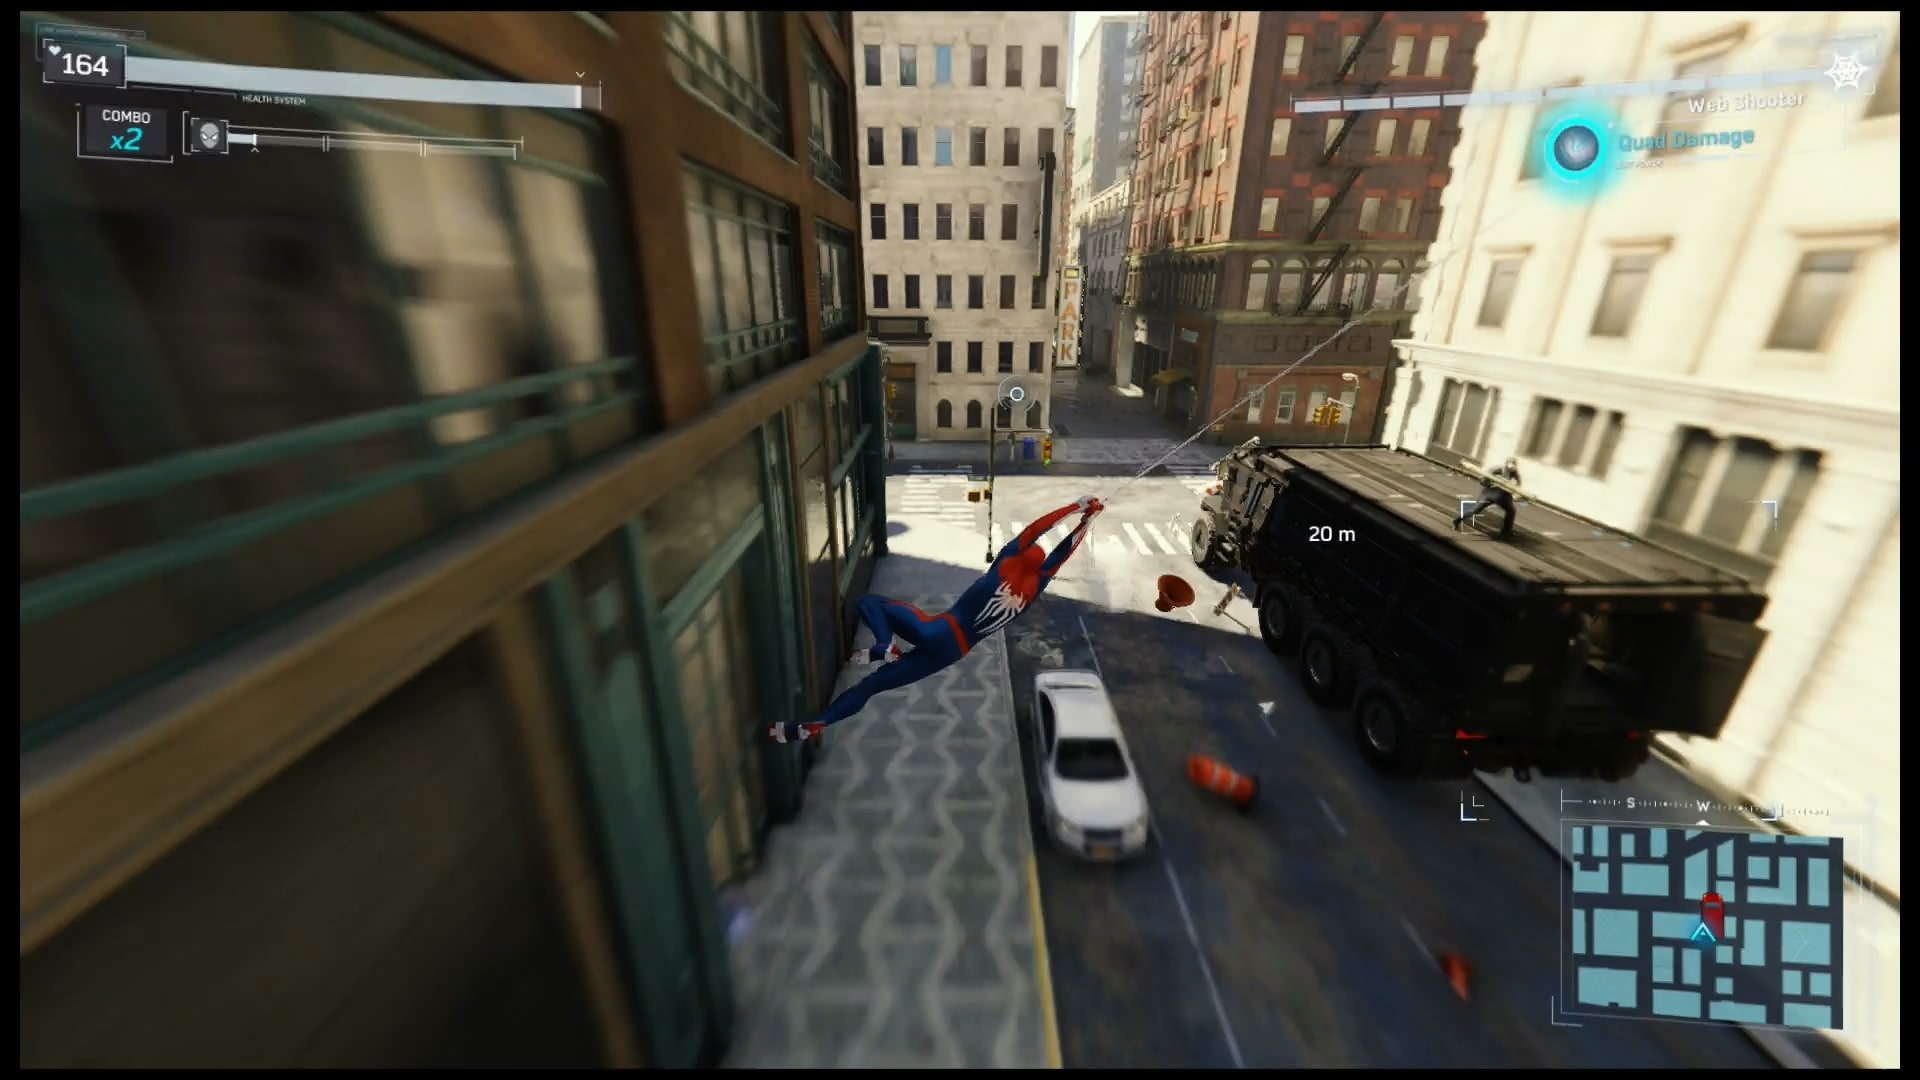 Page 2 of 3 for Marvel's Spider-Man PS4 Walkthrough | GAMERS